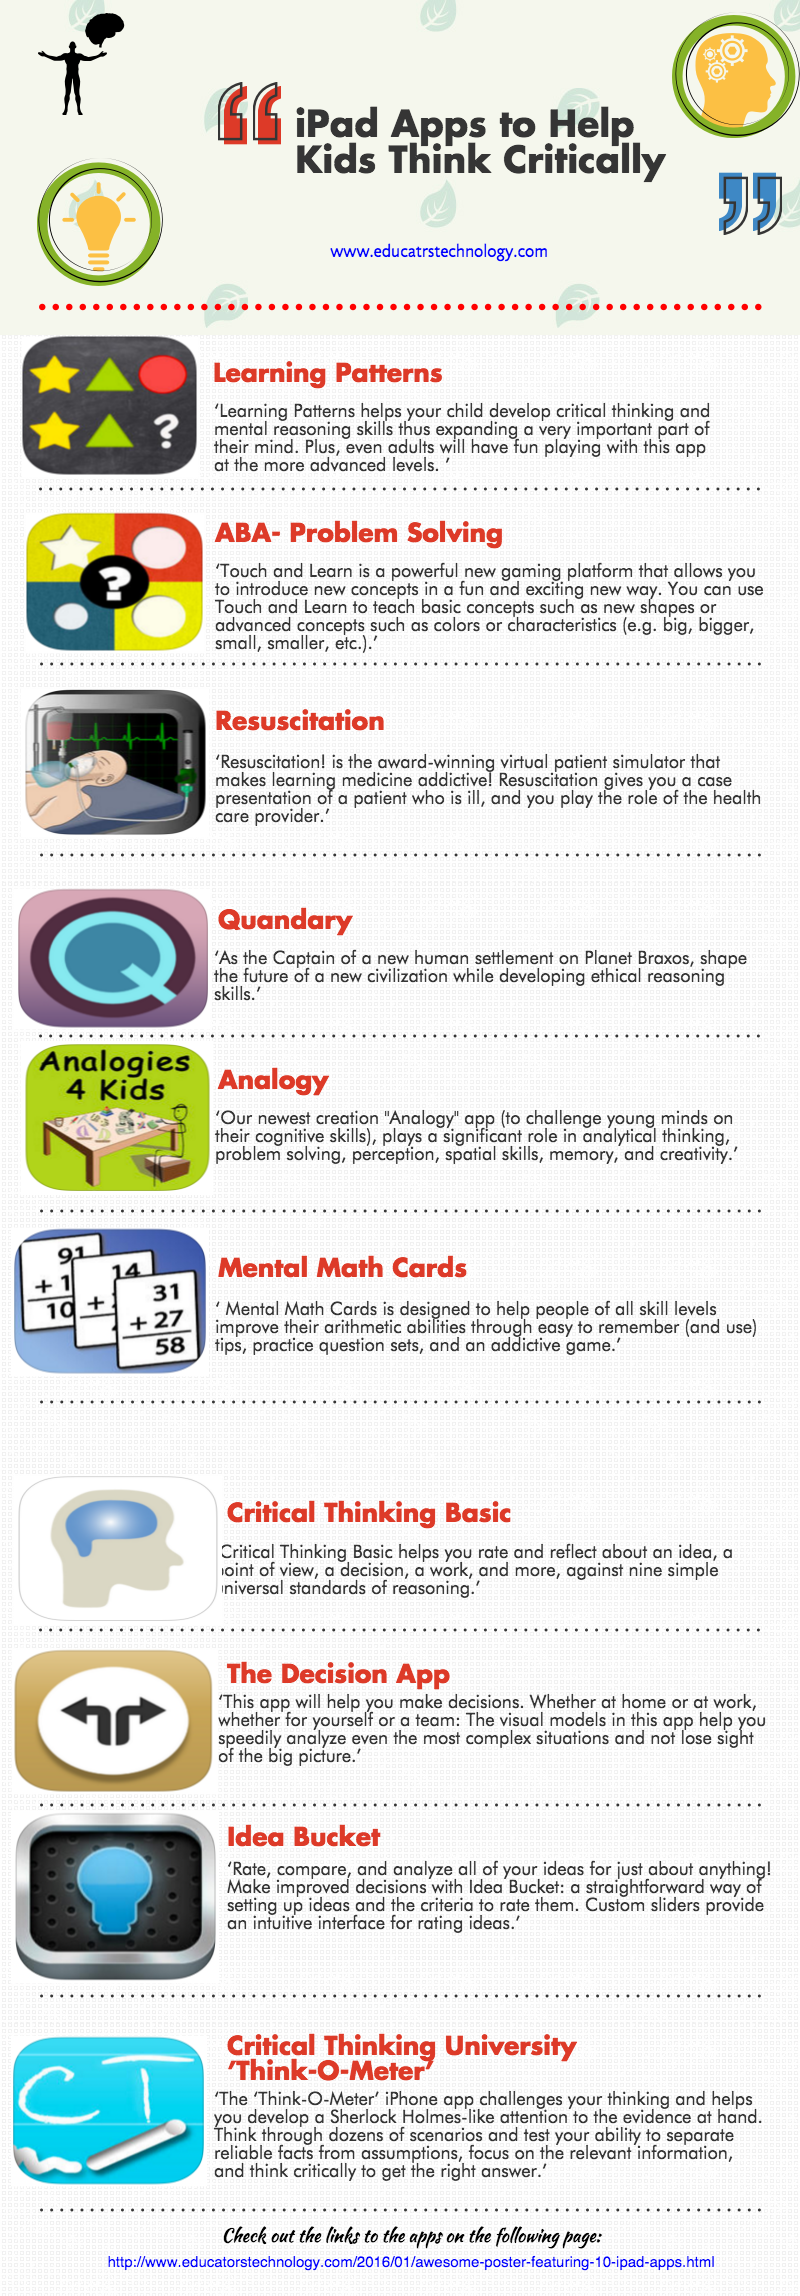 ipad critical thinking apps